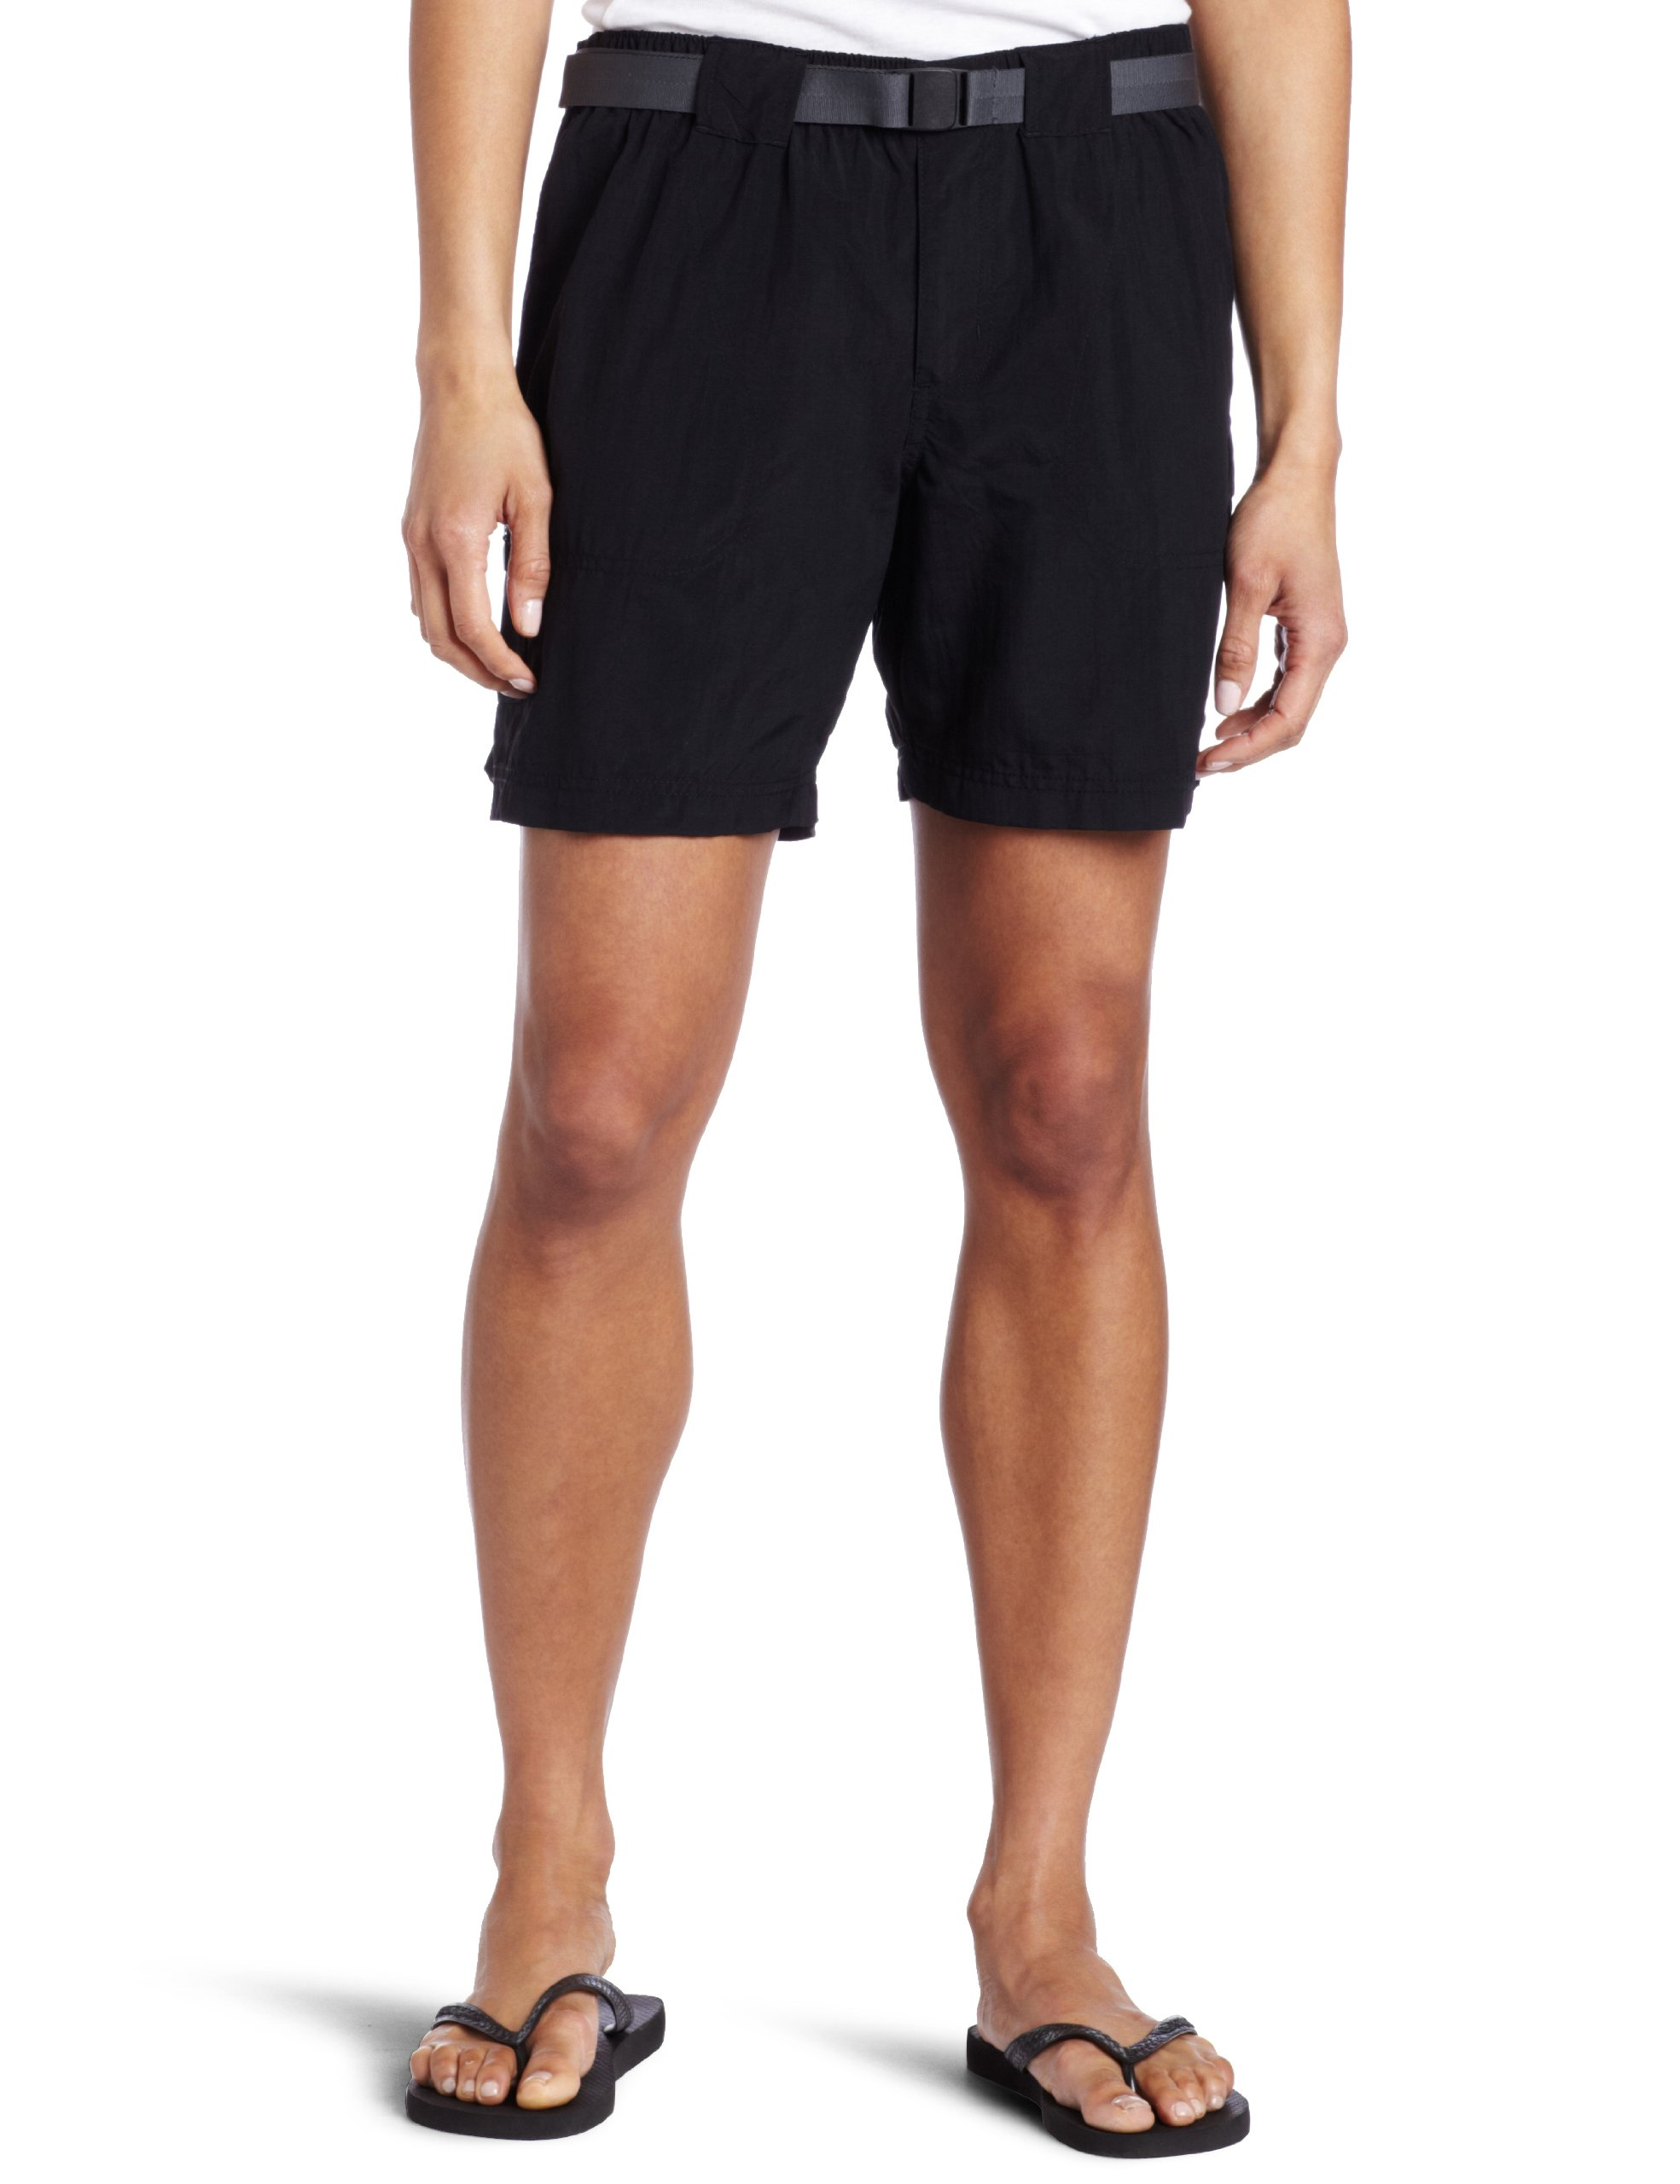 Columbia Women's Sandy River Cargo Short Shorts, black, Mx6